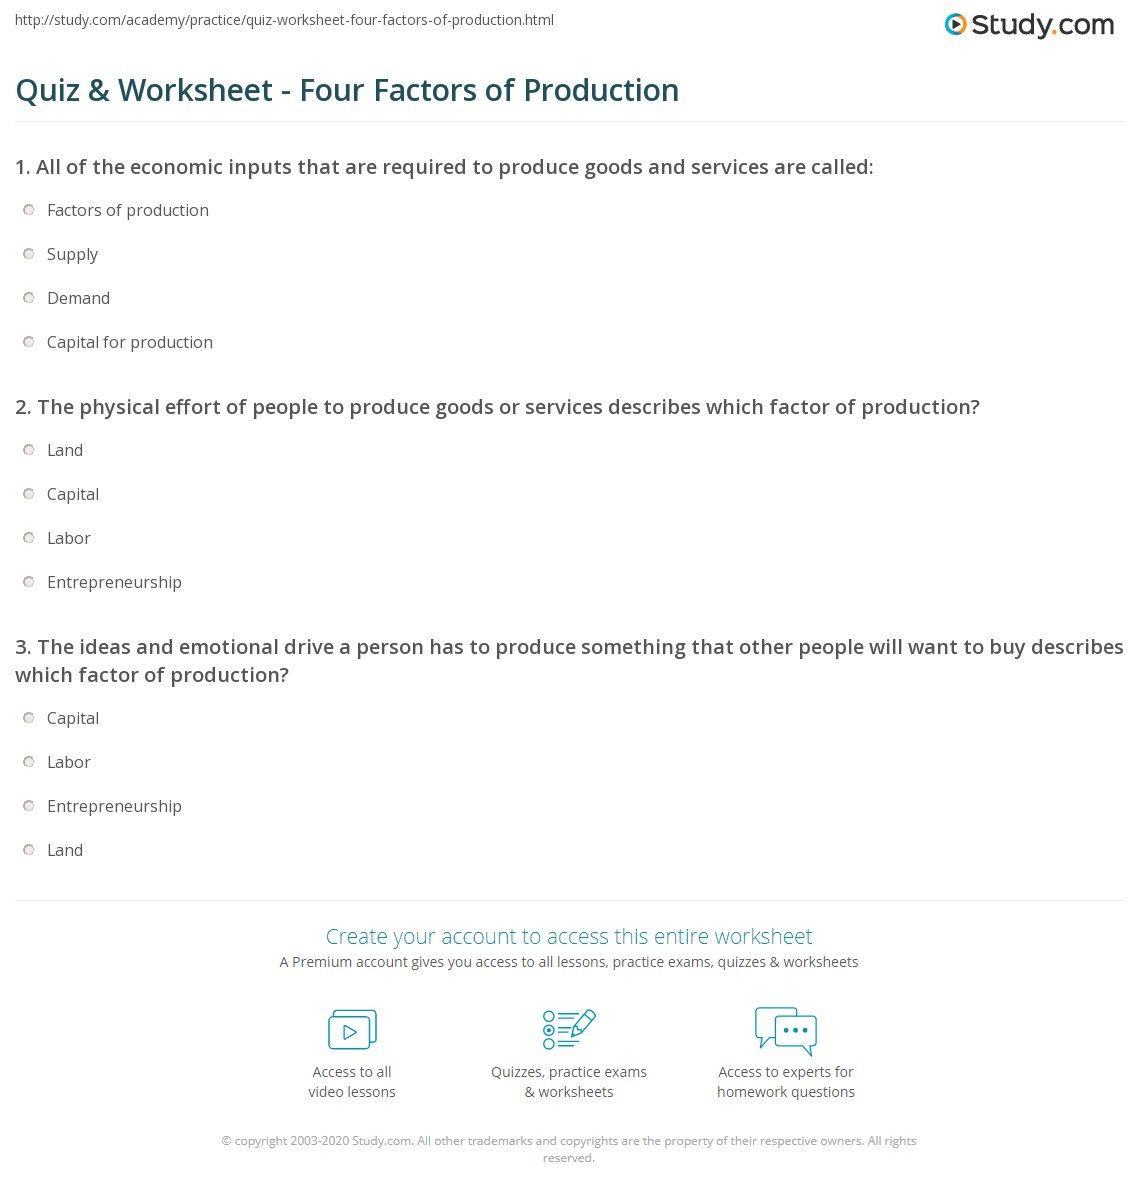 35 Factors Of Production Worksheet Answers